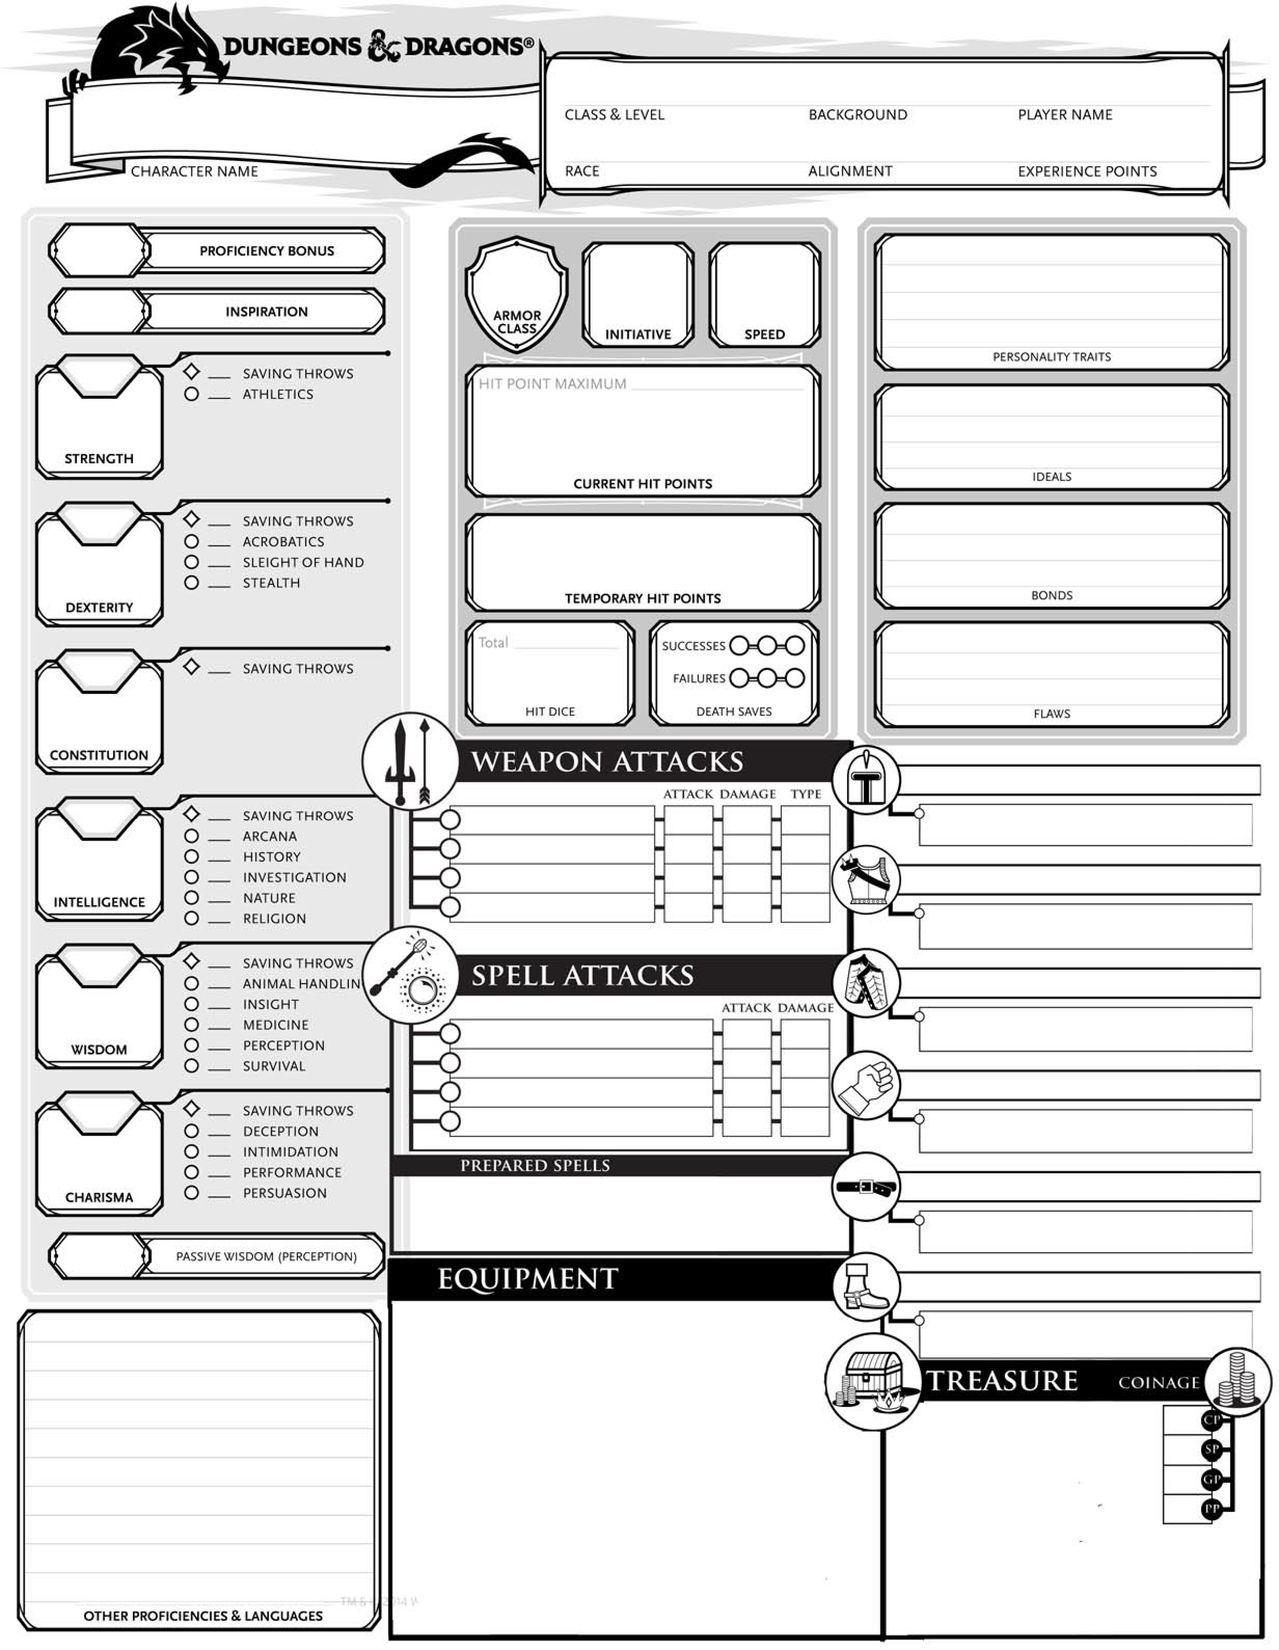 Crafty image with dungeons and dragons character sheet printable